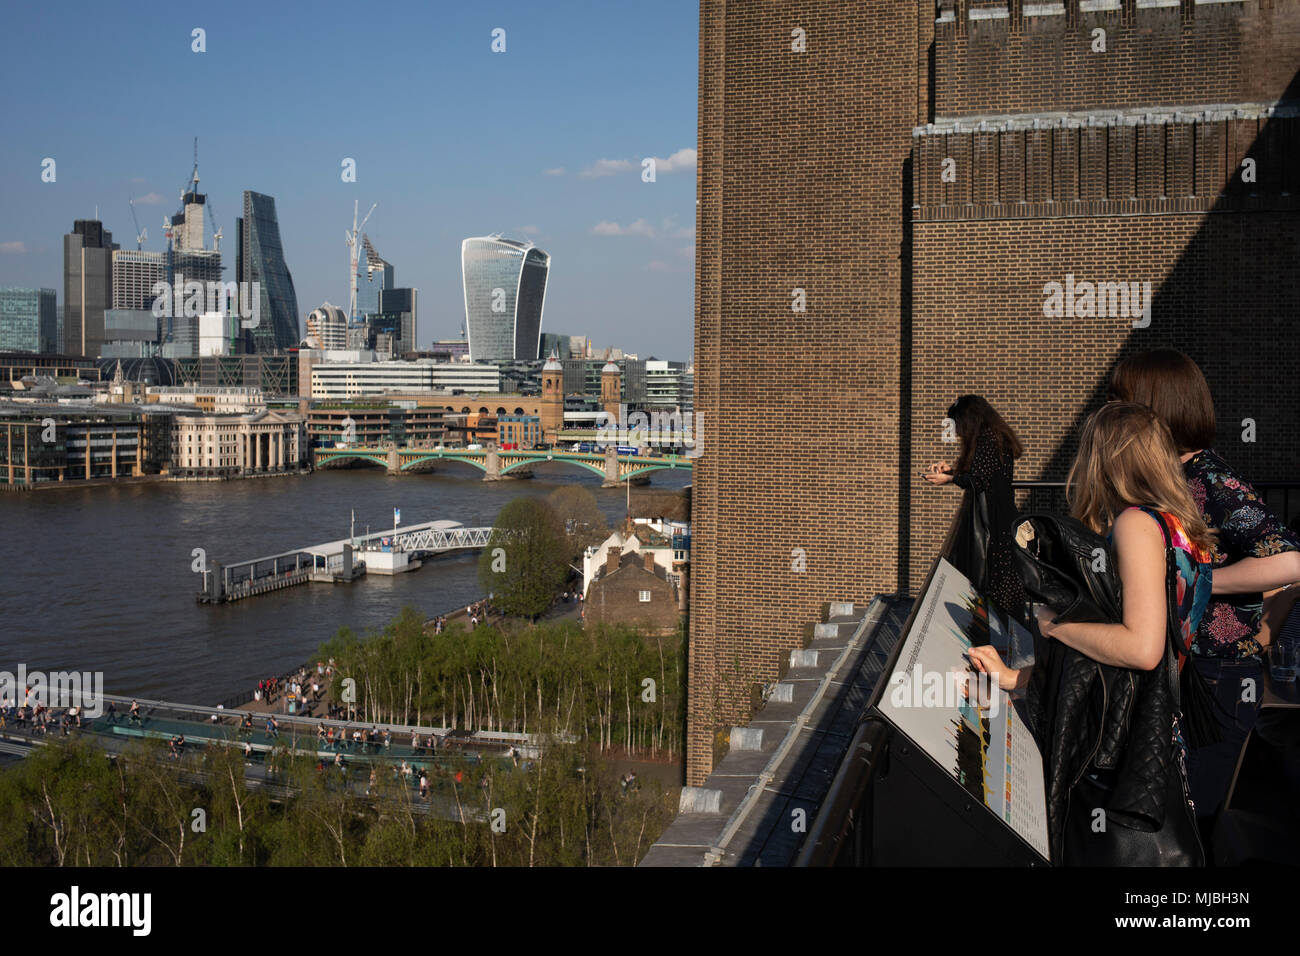 View From The Terrace At Tate Modern Gallery Of Contemporary